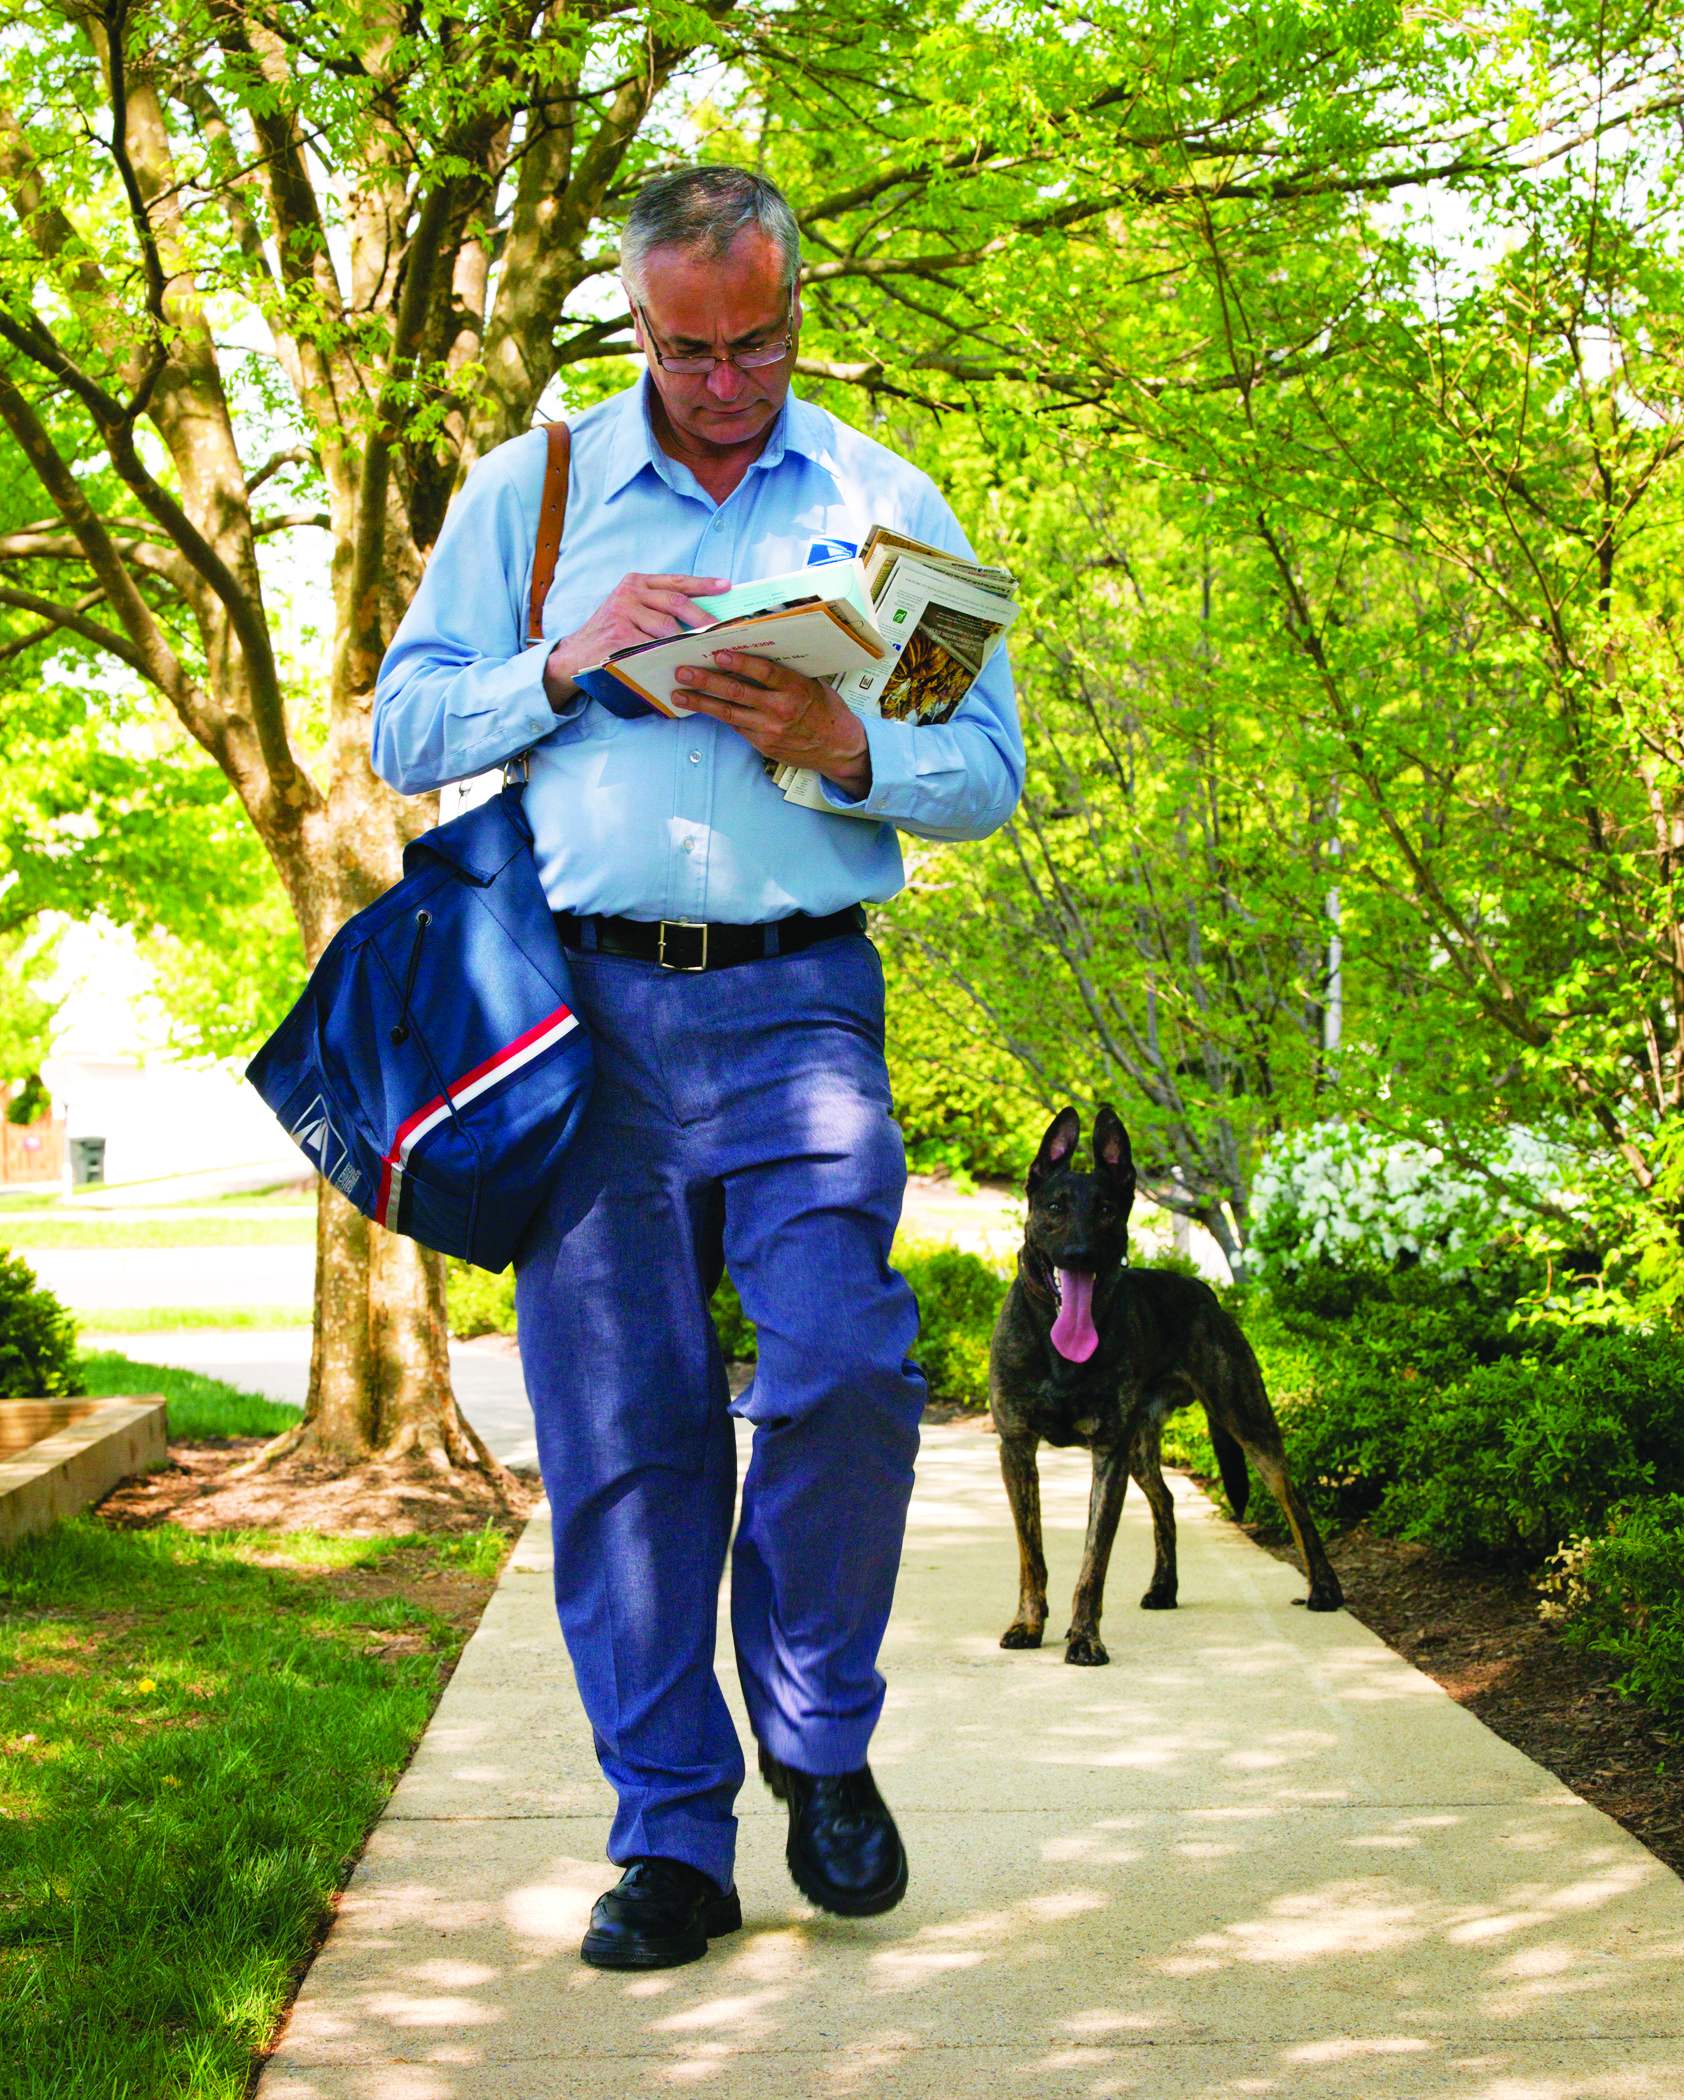 USPS Carriers Attacked By Dogs